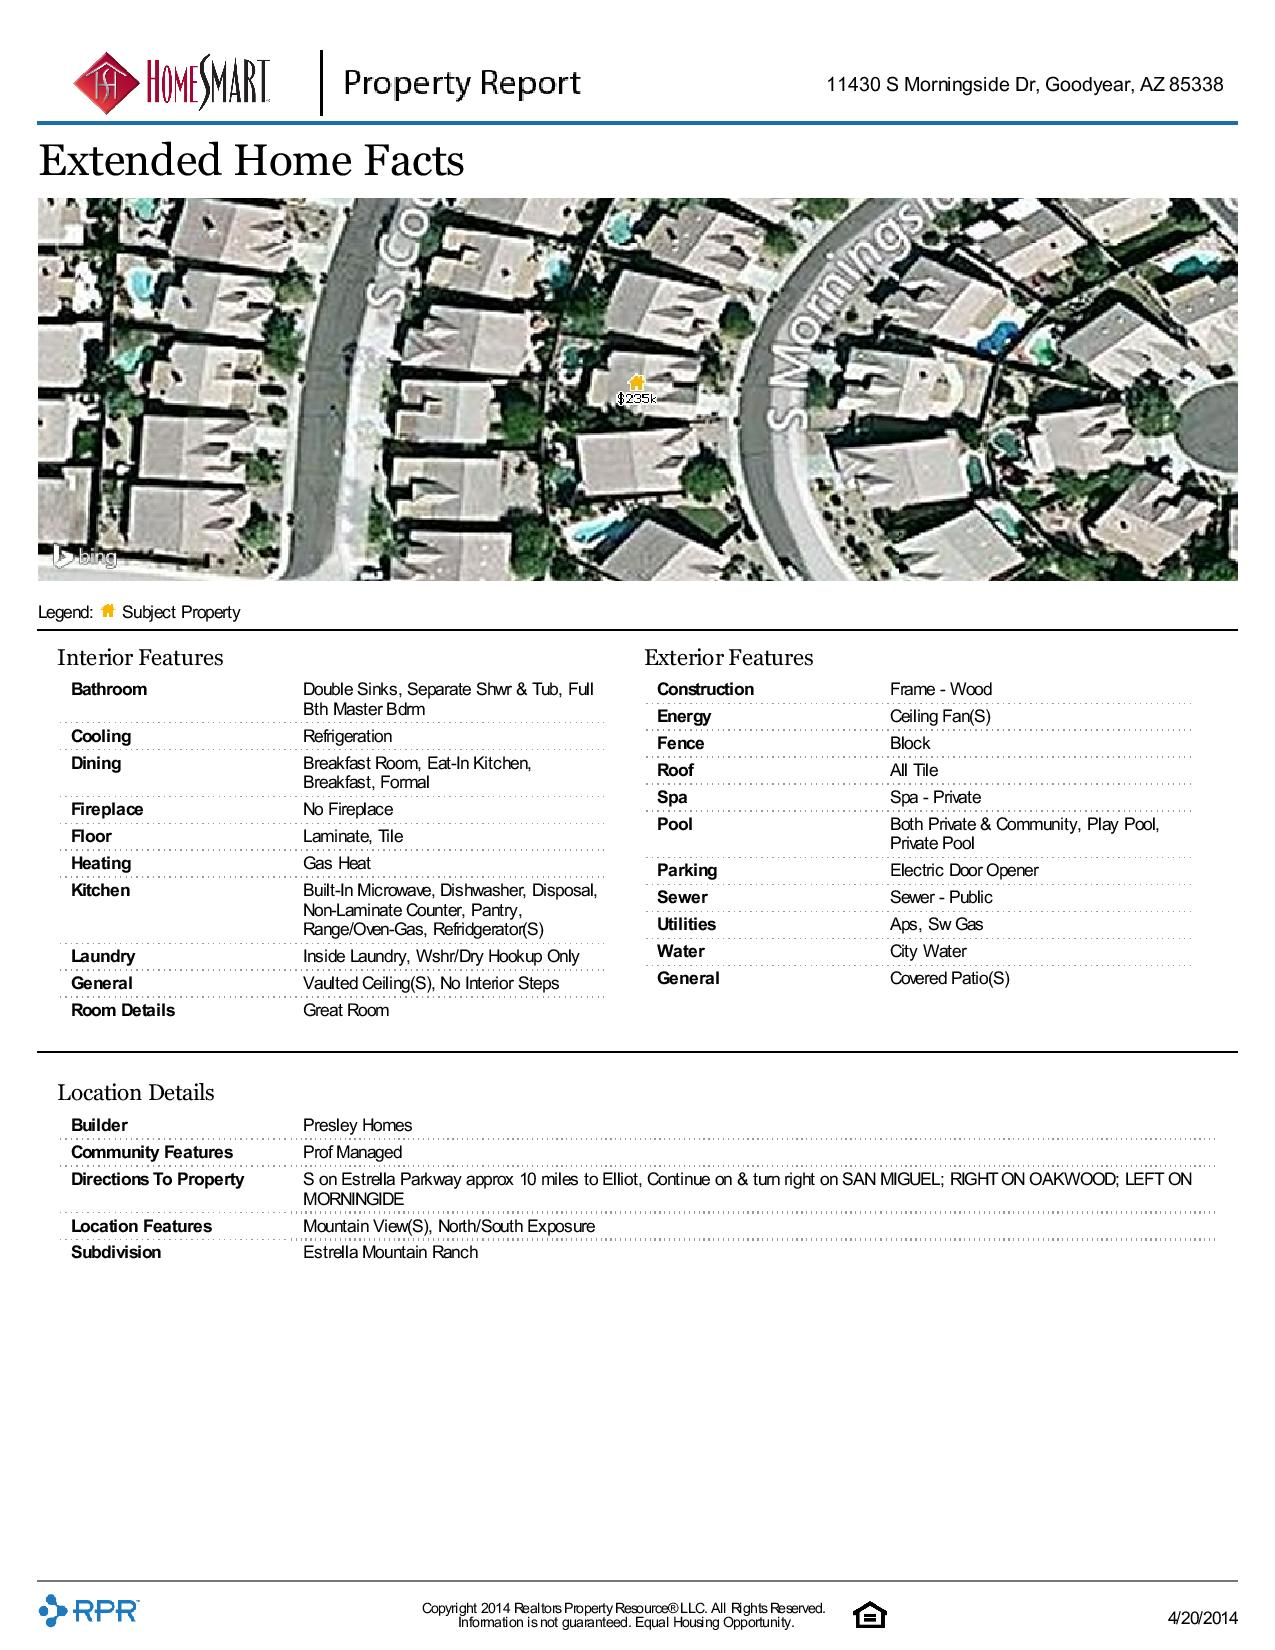 11430-S-Morningside-Dr-Goodyear-AZ-85338-page-004